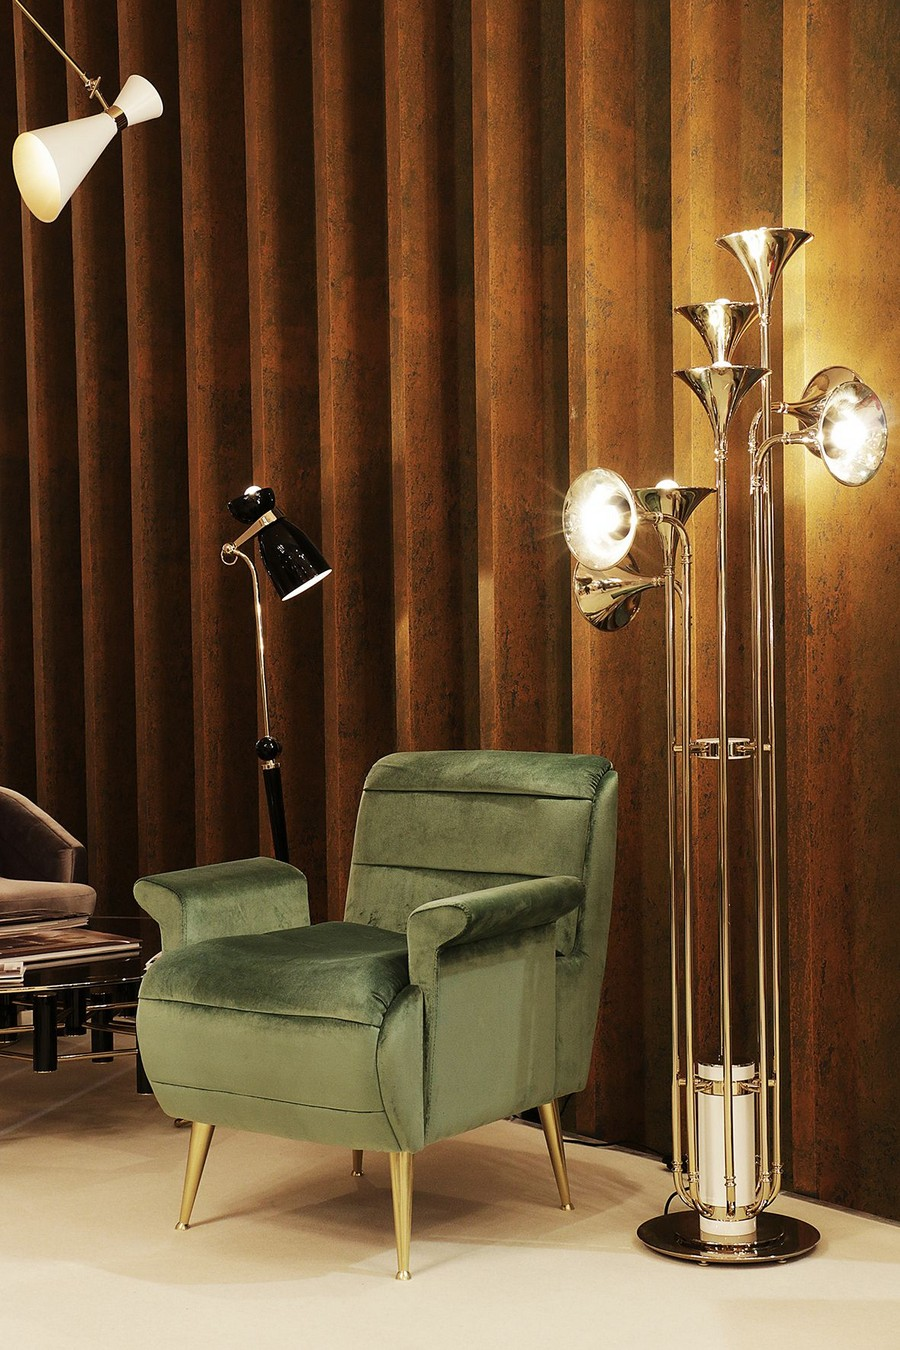 7 Mid-Century Modern Floor Lamps For A Trendy Reading Corner mid-century modern floor lamps 7 Mid-Century Modern Floor Lamps  For A Trendy  Reading Corner 7 Mid Century Modern Floor Lamps For A Trendy Reading Corner 2